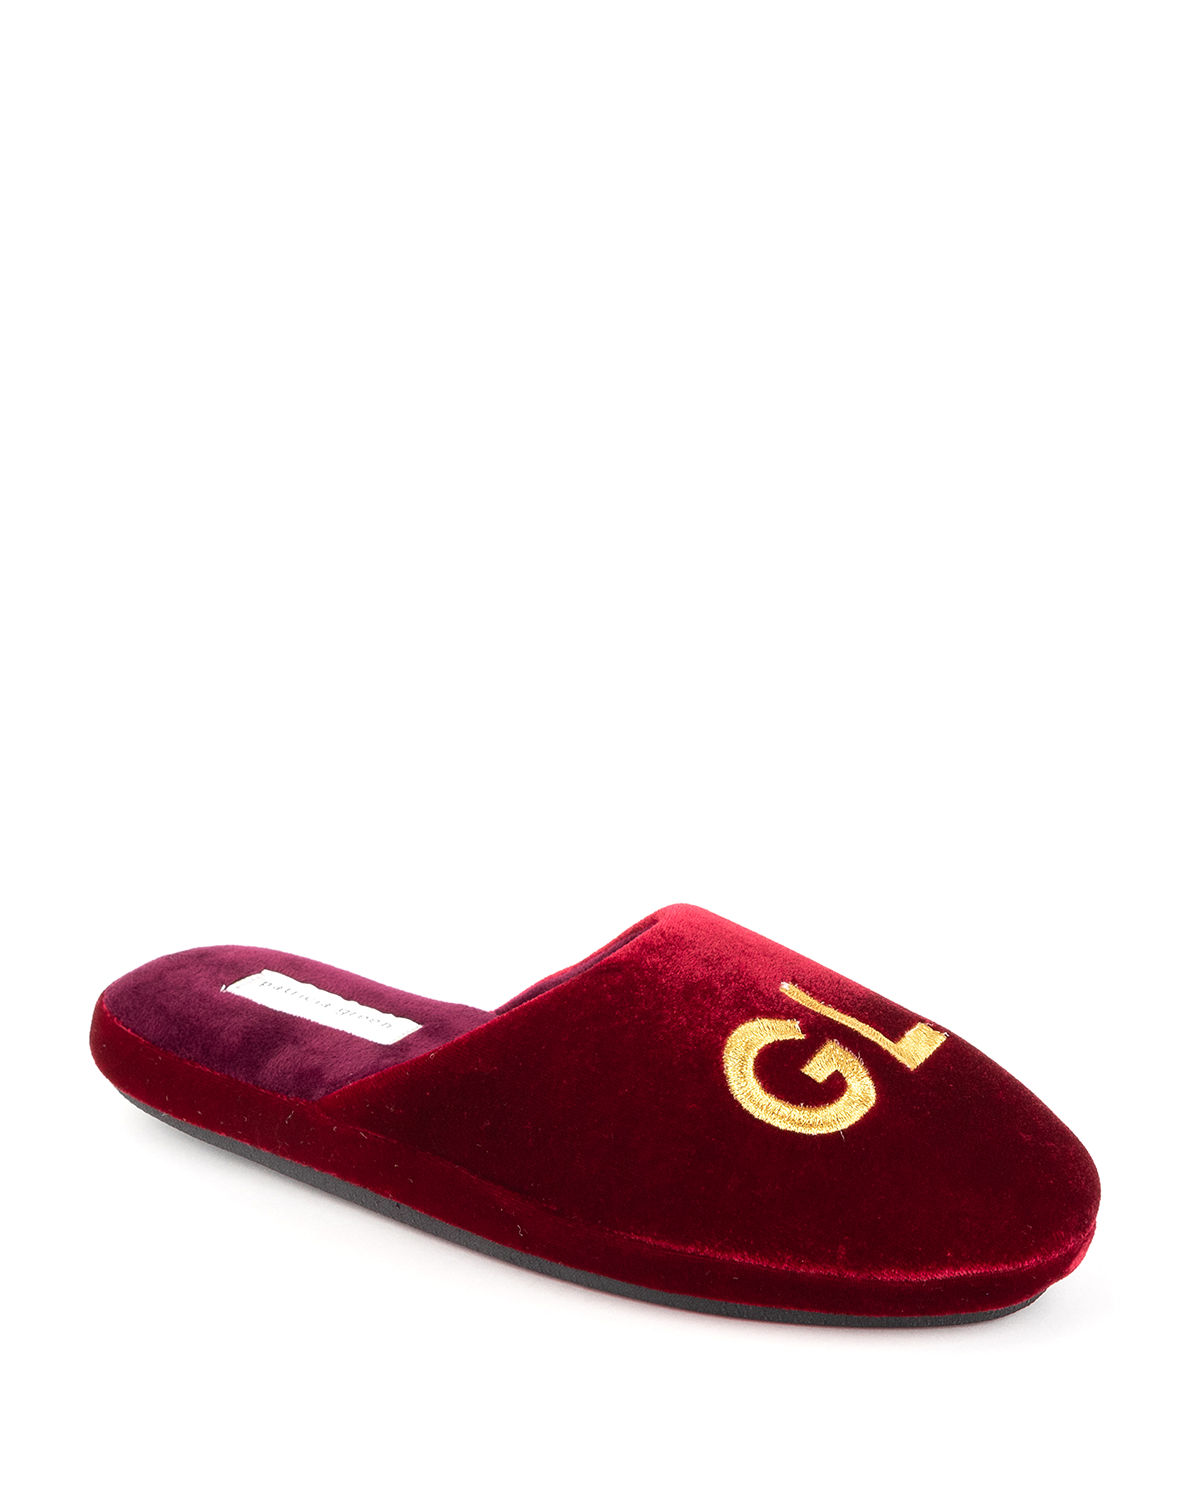 Glam Embroidered Slippers